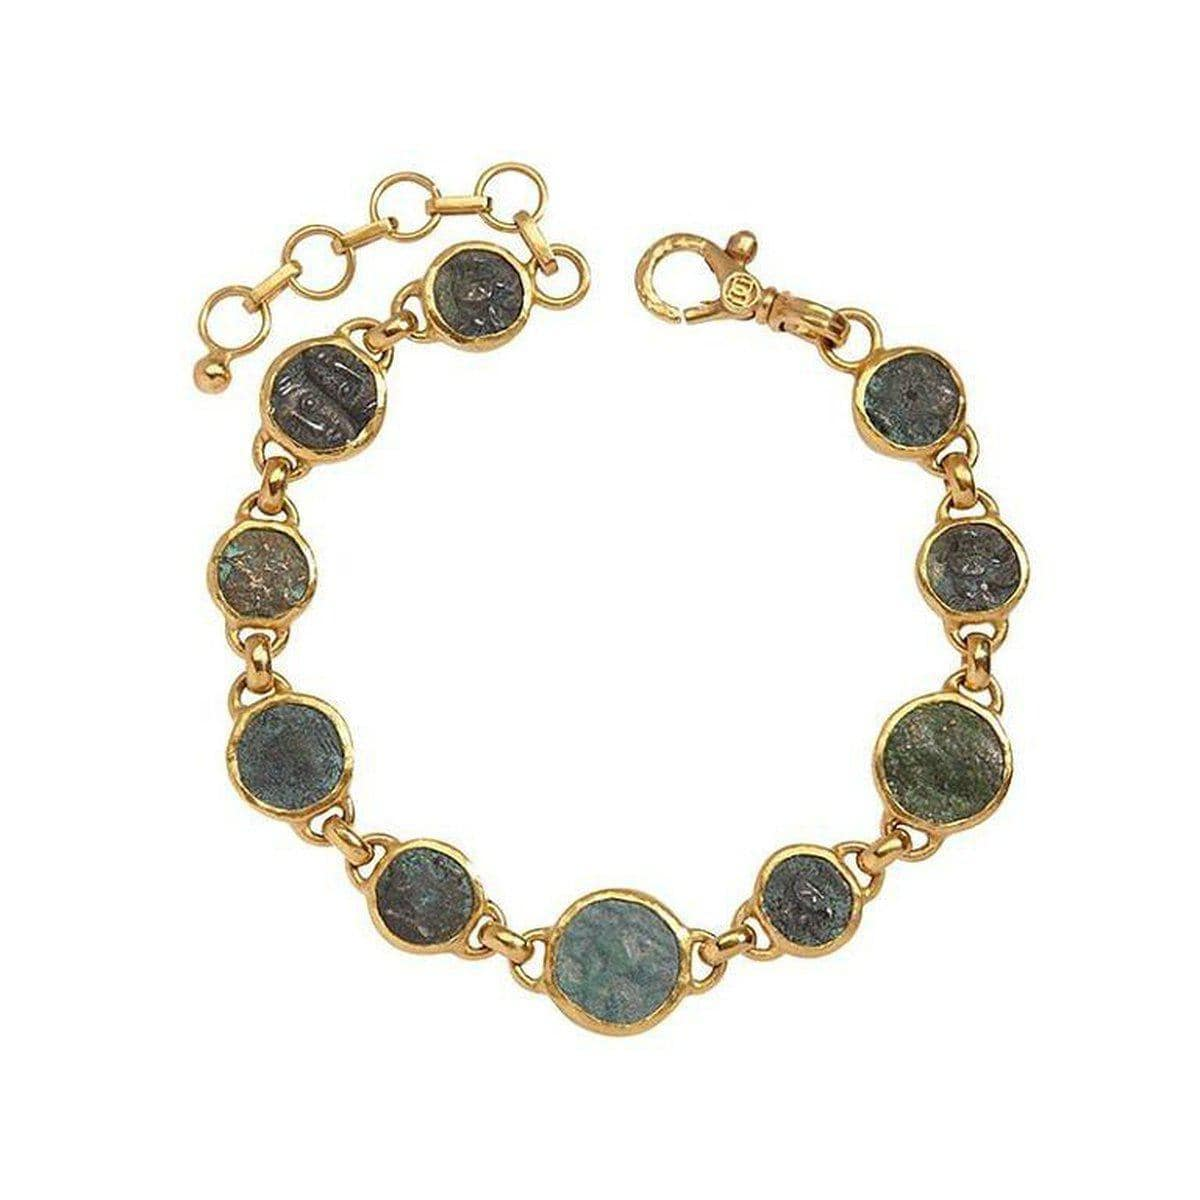 Antiquities 24K Gold Coin Bracelet - B-U23885-CN